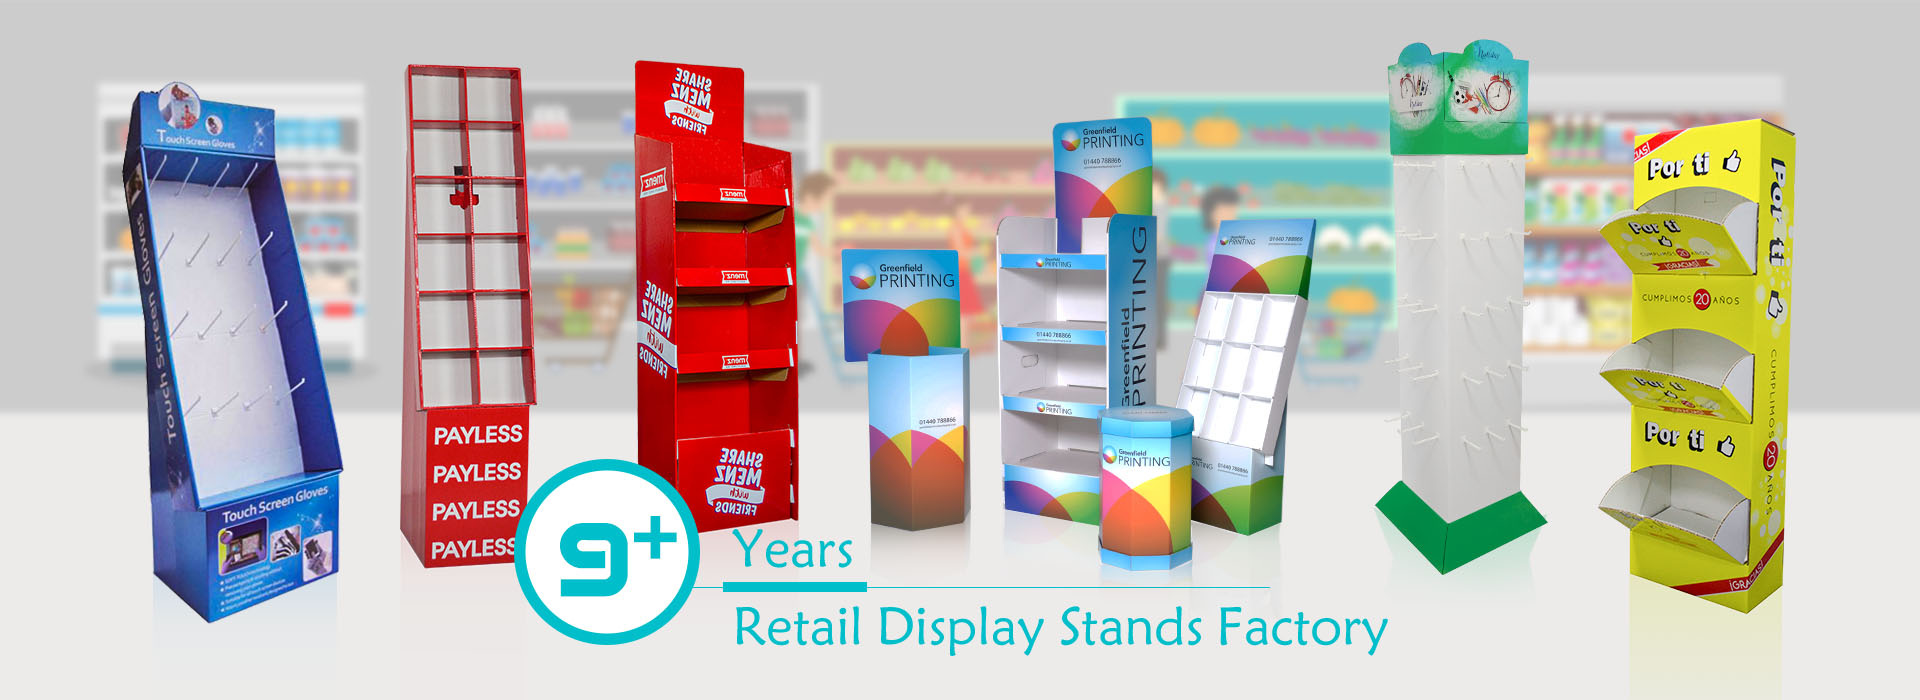 NOW!! Contact Us To Meet Your Display Stands Needs